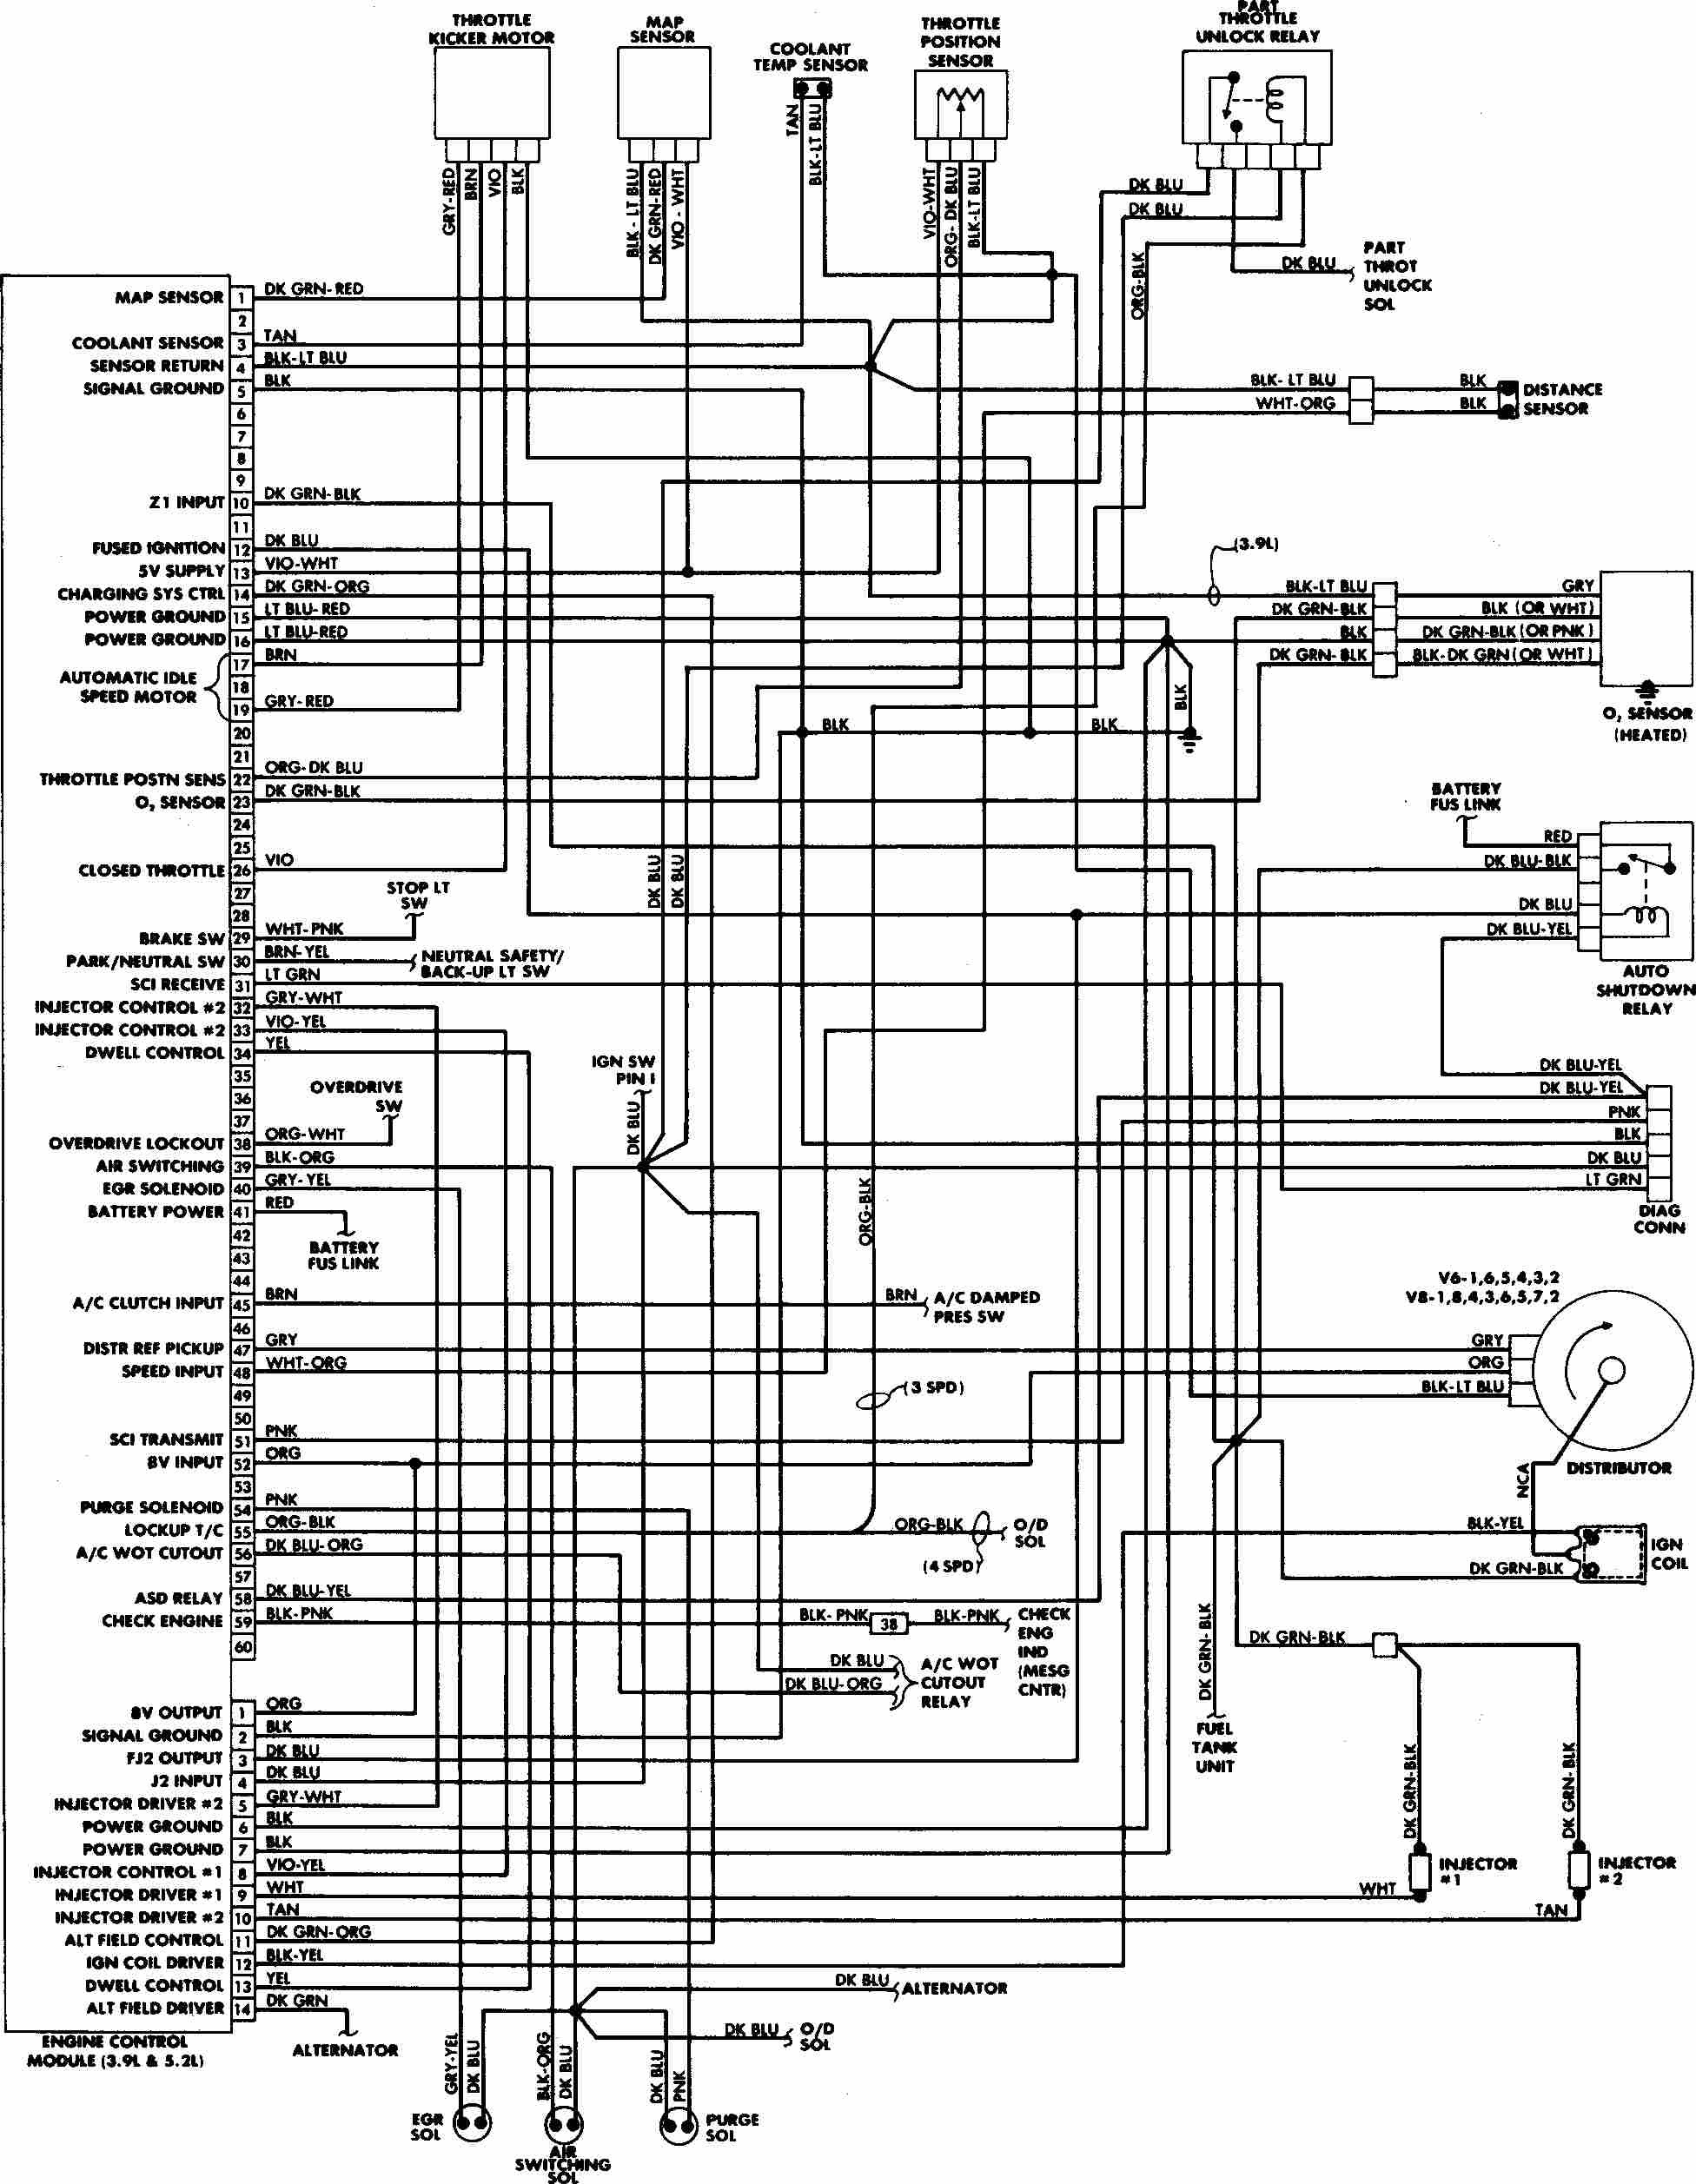 dodge caravan ac wiring diagram free picture - wiring diagram teach -  teach.lechicchedimammavale.it  lechicchedimammavale.it